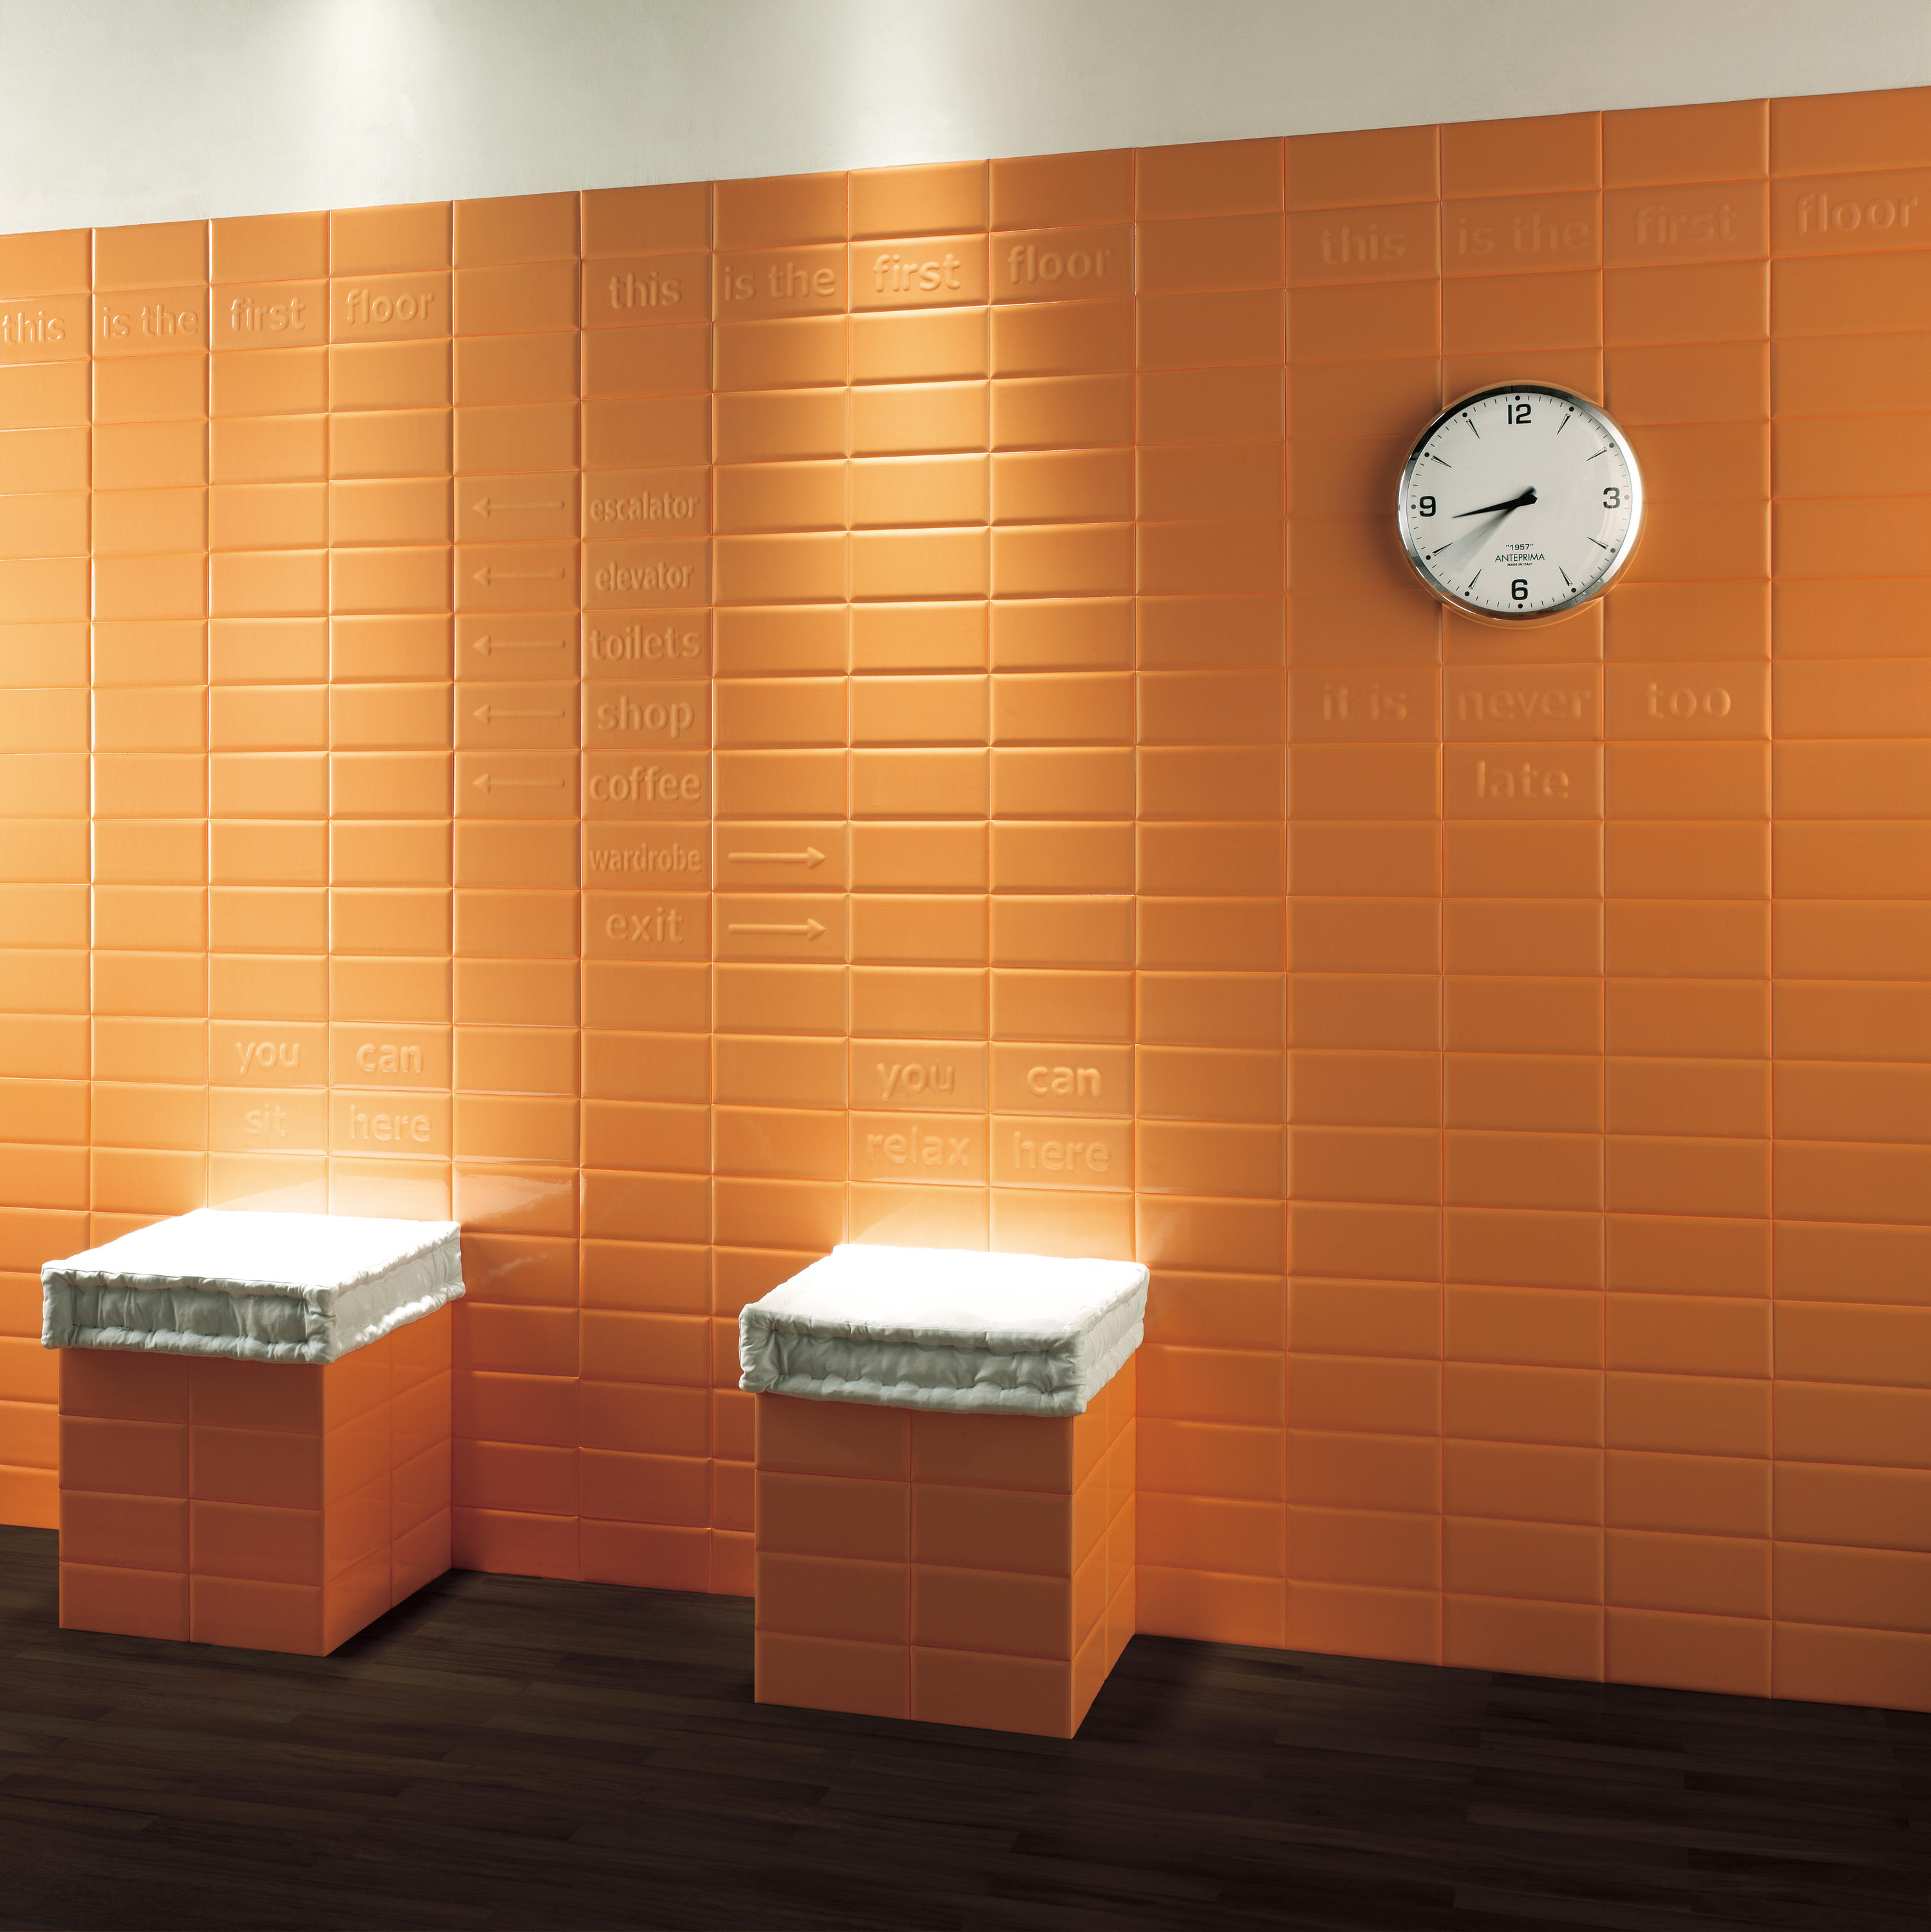 Pun acqua keramik fliesen von ascot ceramiche architonic for Carrelage salle de bain orange